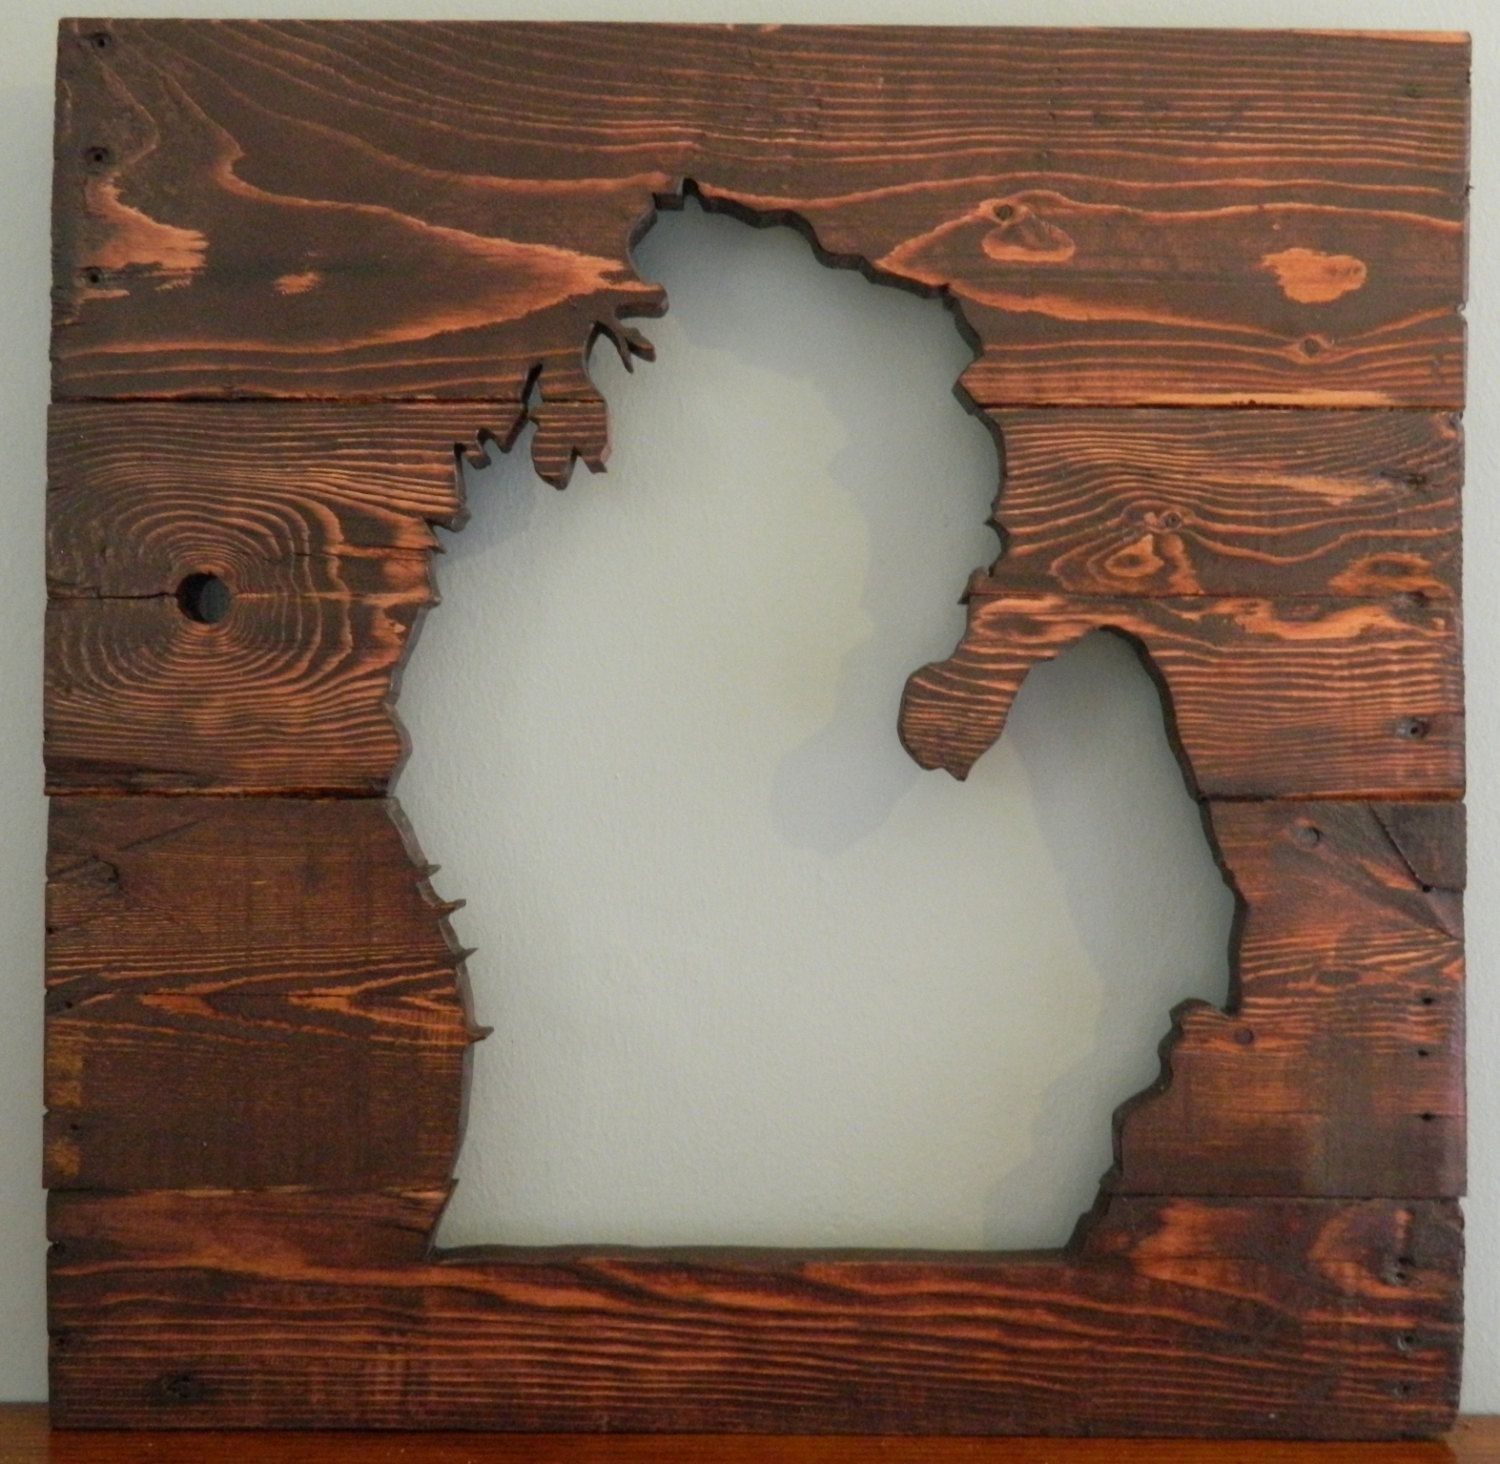 Reclaimed Wood Art Wall Hanging~ Michigan Mitten Cutout SIlhouette~ 20 x  20~ any state possible - Reclaimed Wood Art Wall Hanging~ Michigan Mitten Cutout SIlhouette